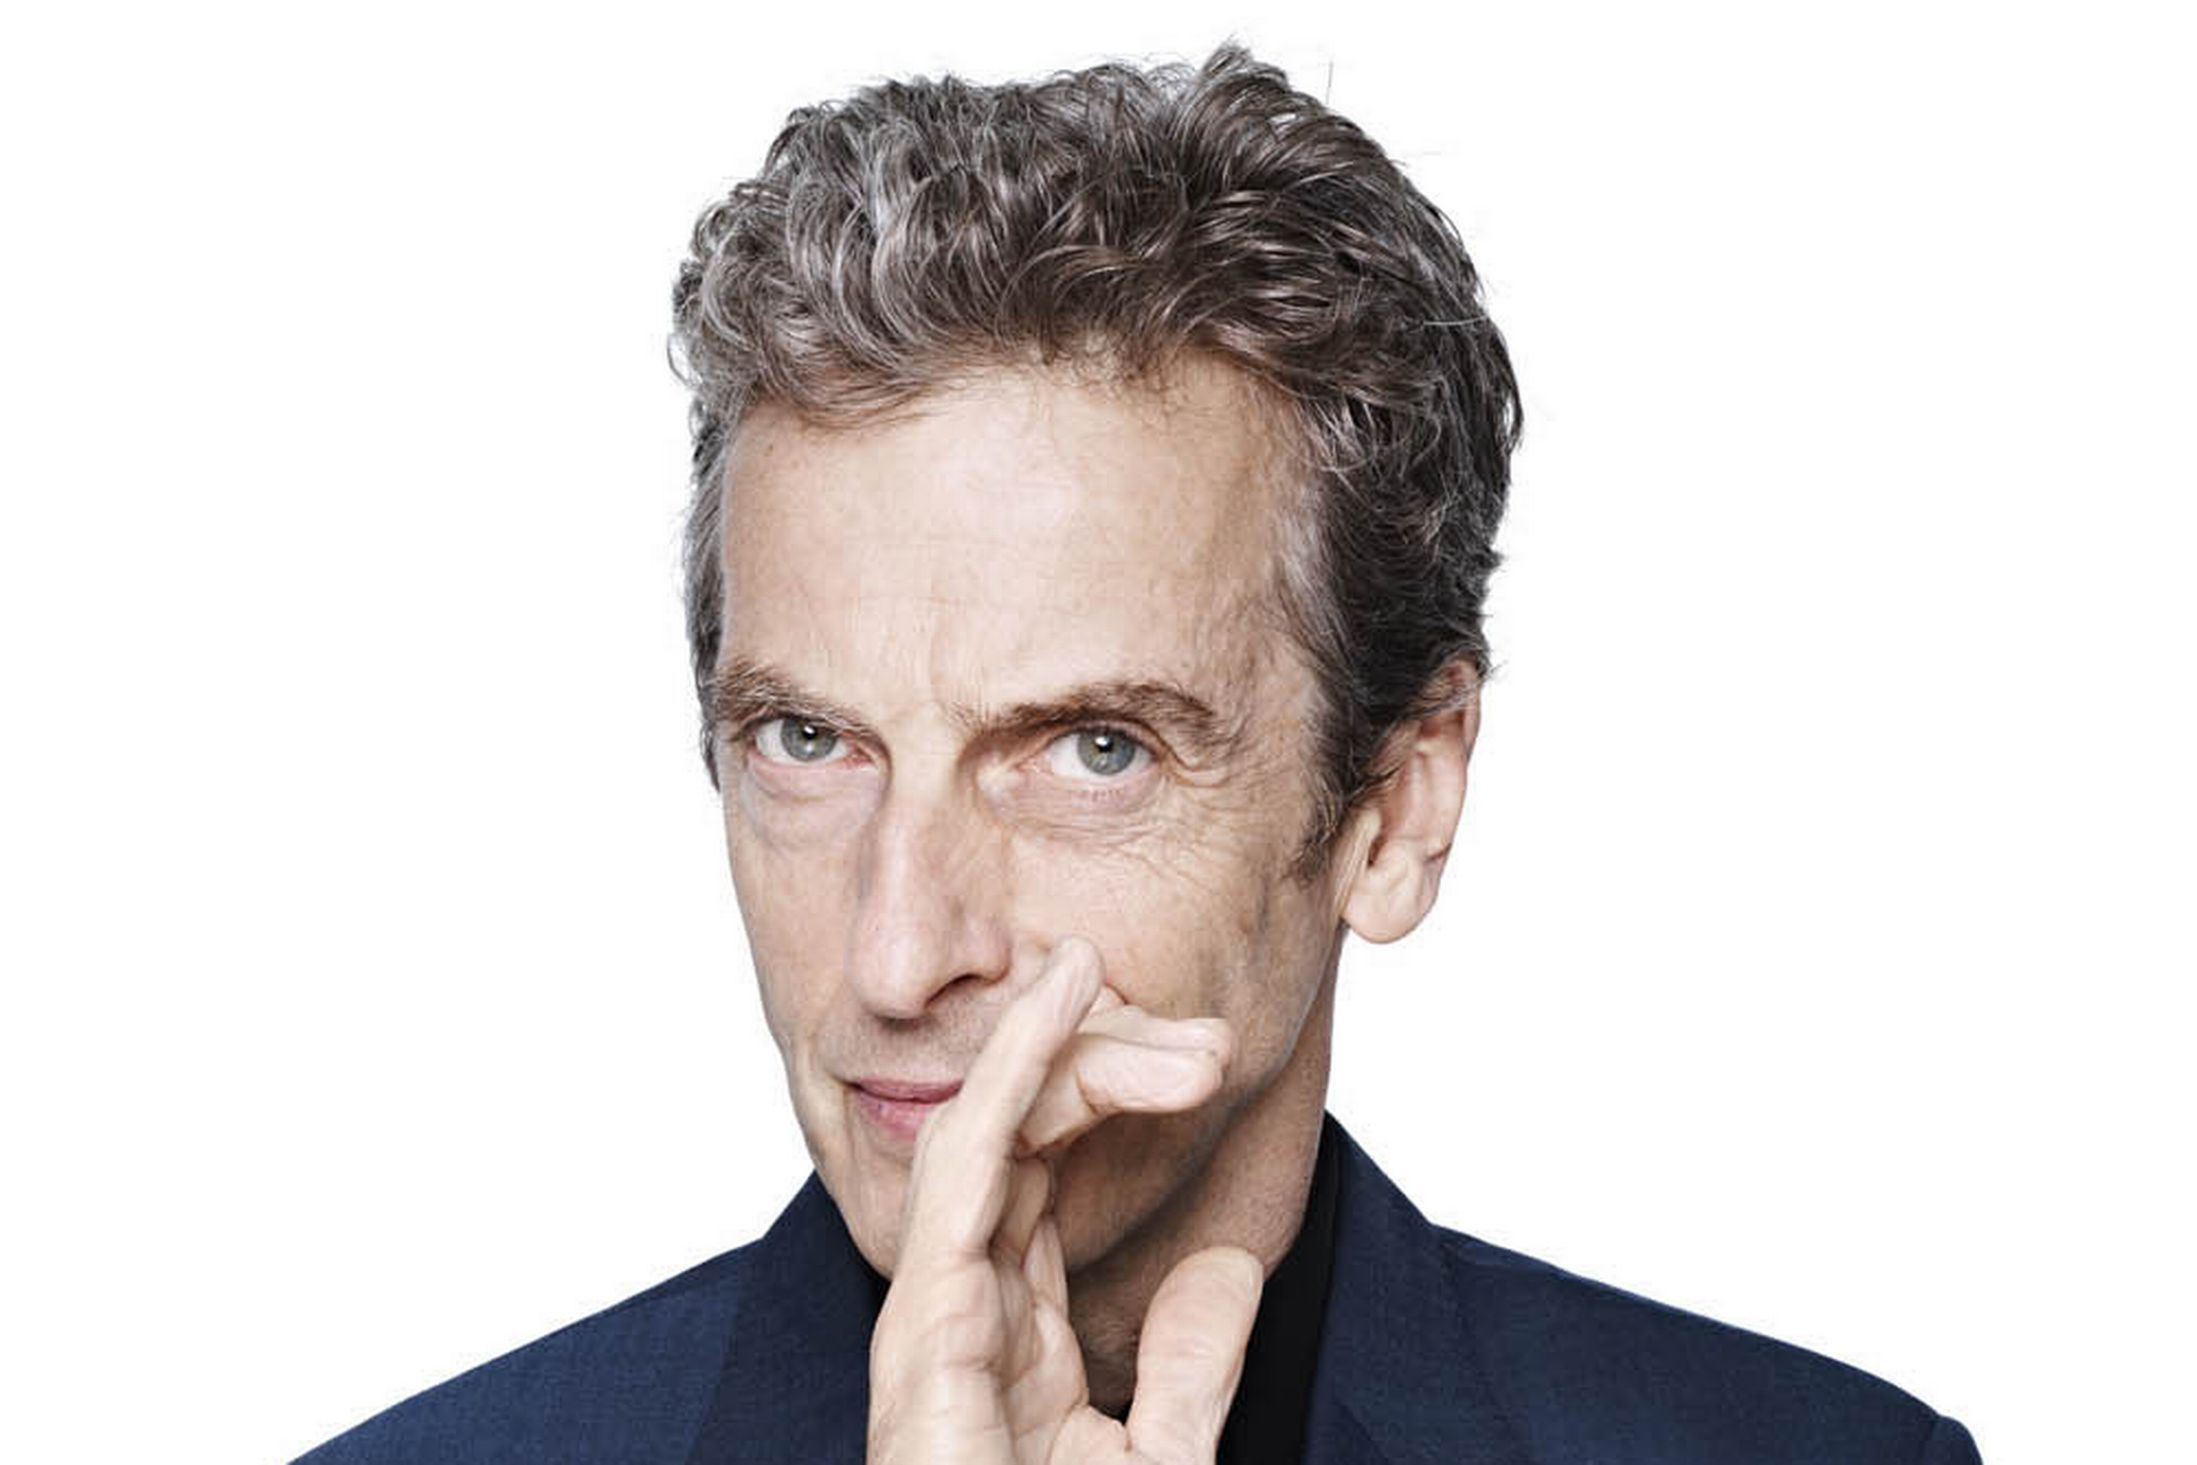 Theres A Story Behind The Ring Peter Capaldi Will Wear On Doctor Who